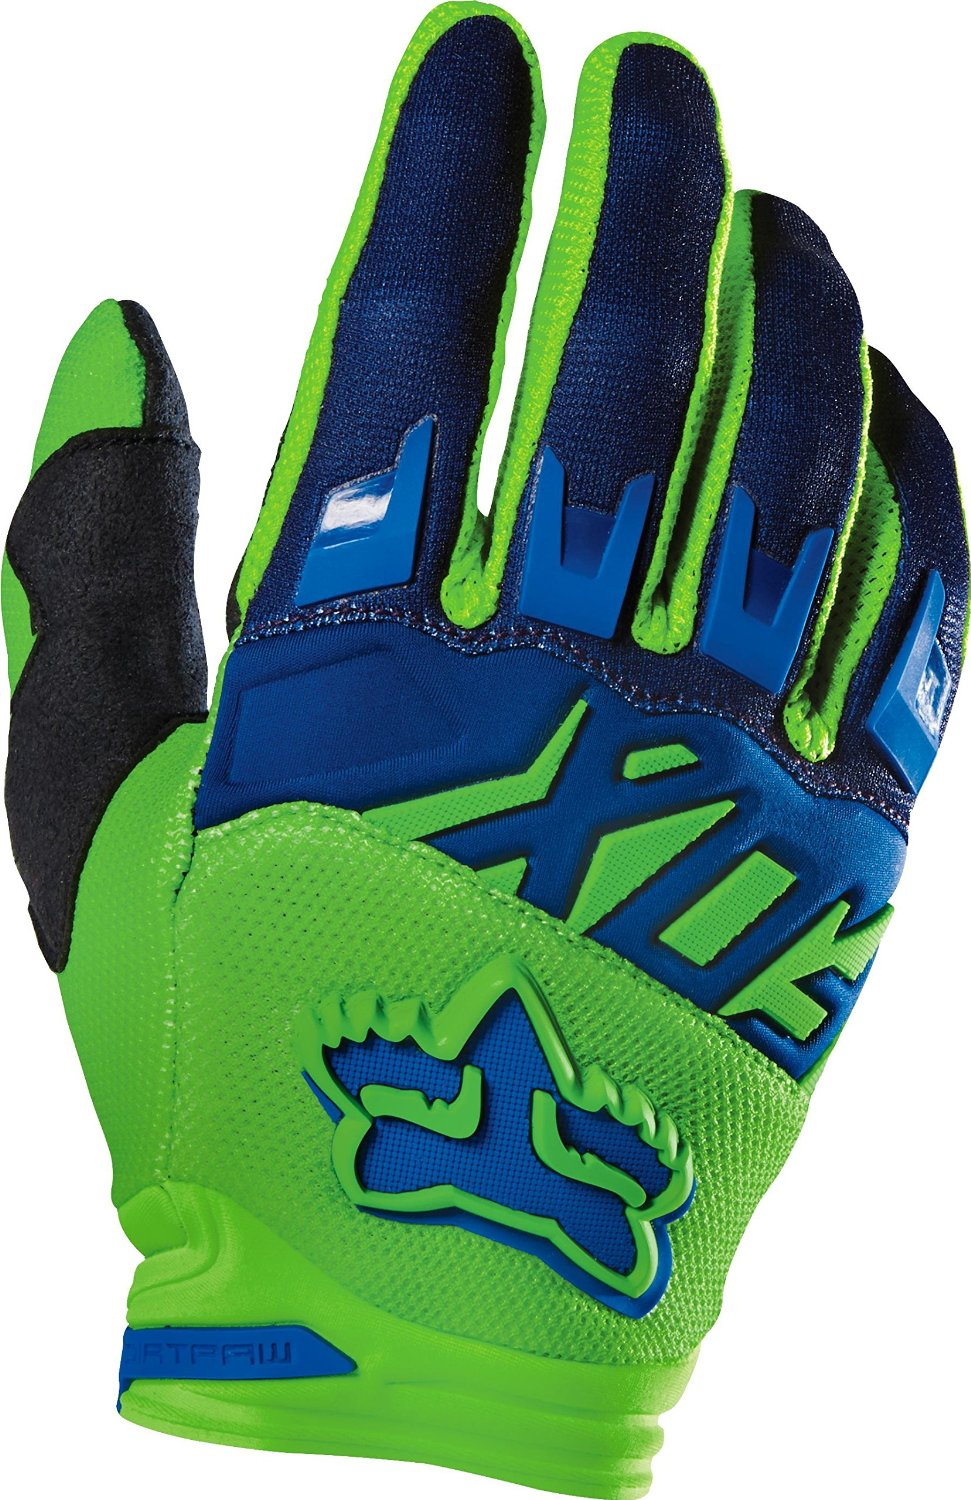 Fox Racing 2016 Dirtpaw Race Youth Boys MX Motorcycle Gloves - Flo Green